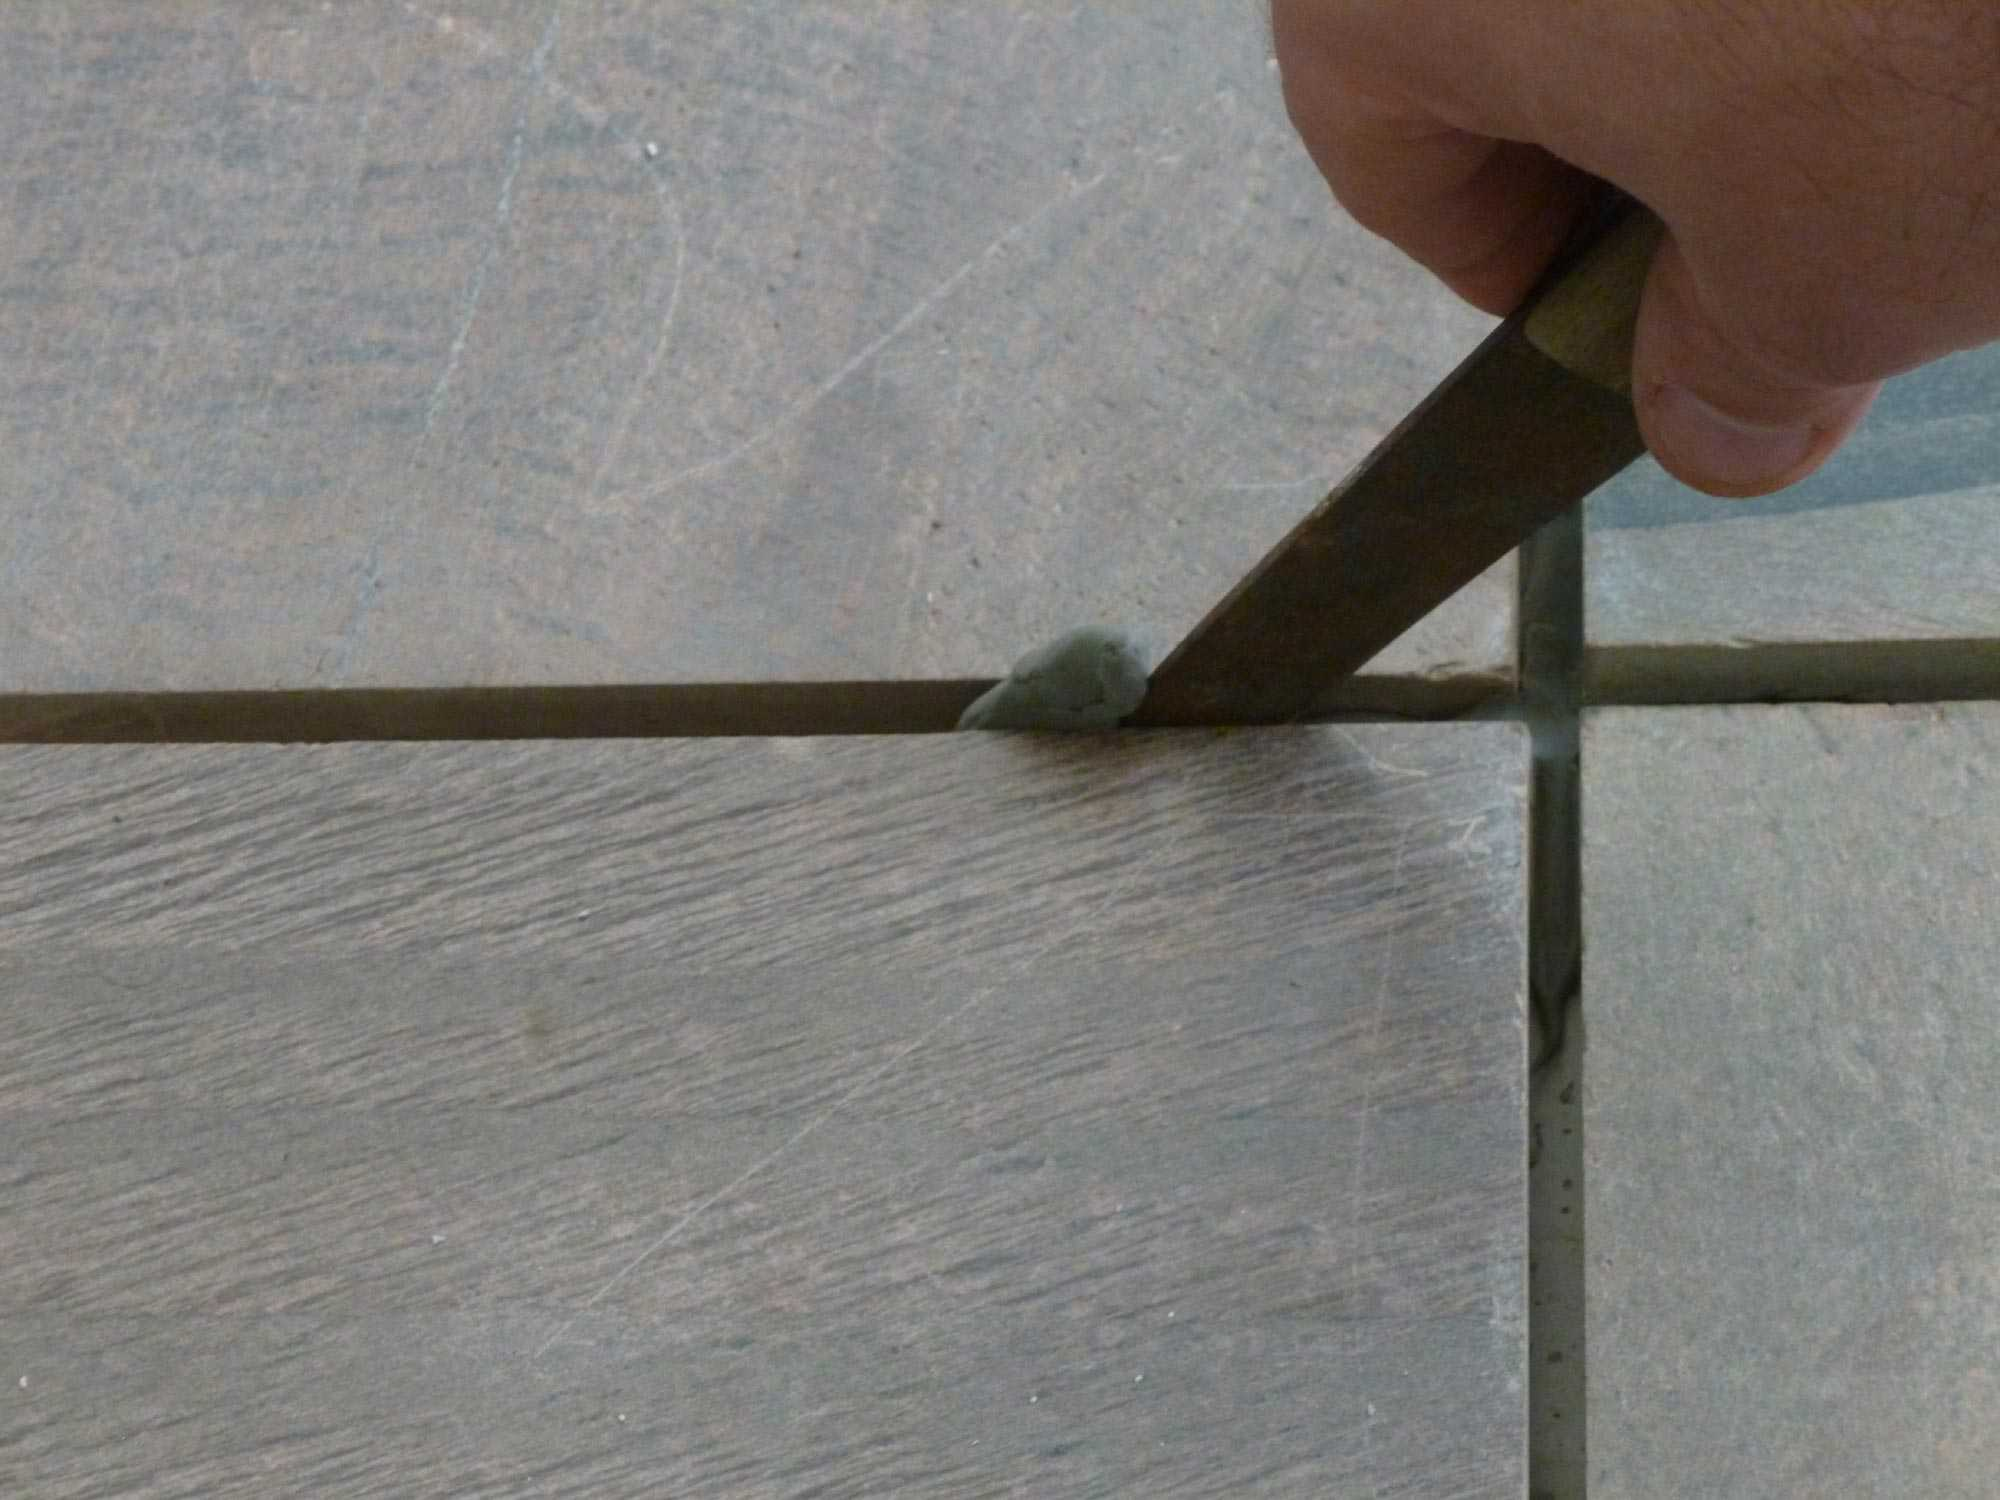 Remove Excess Tile Mortar